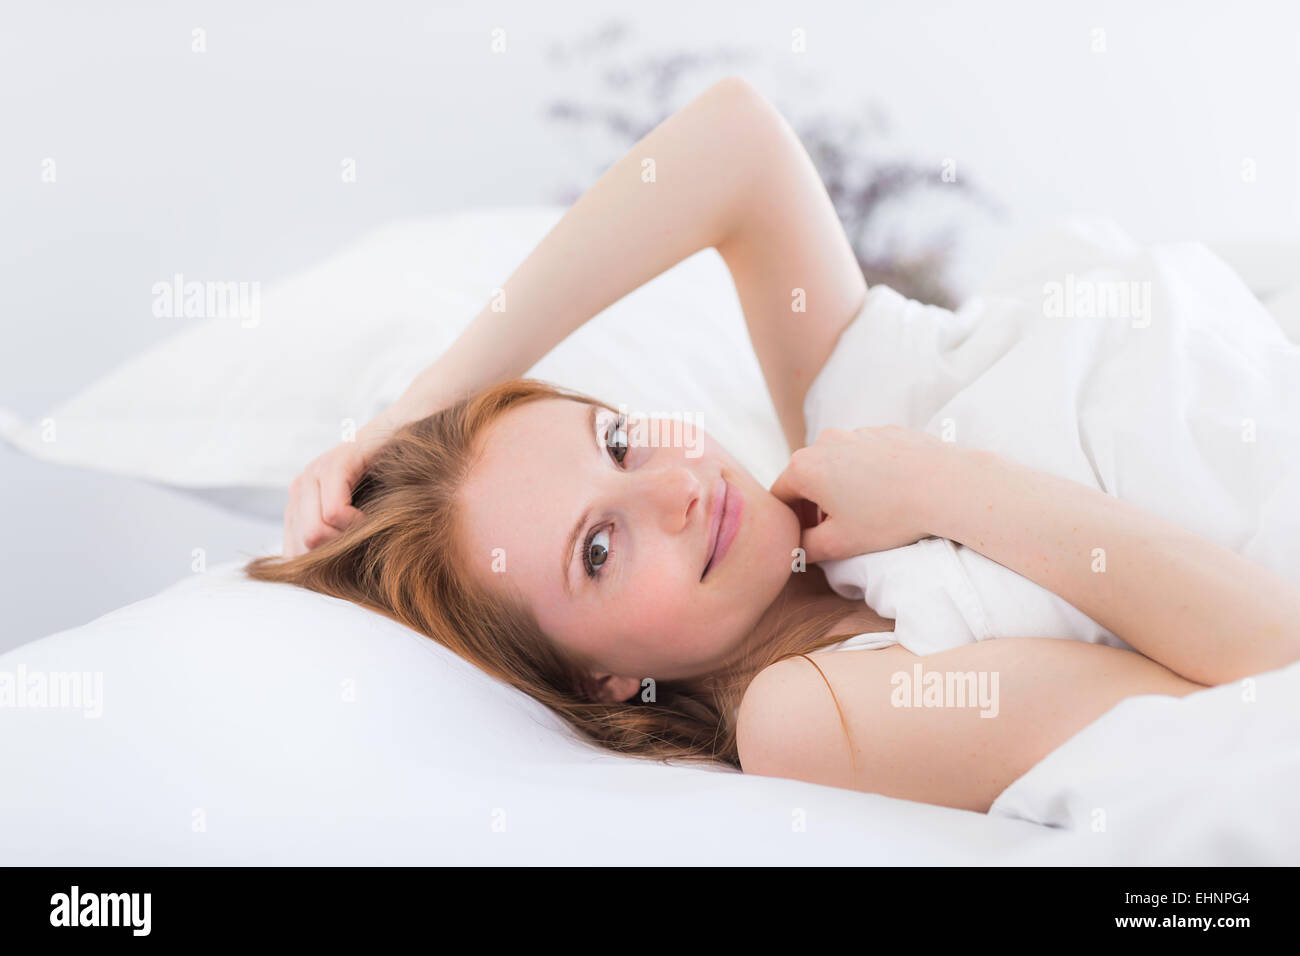 Woman laying in bed, head on pillow, smiling at camera - Stock Image